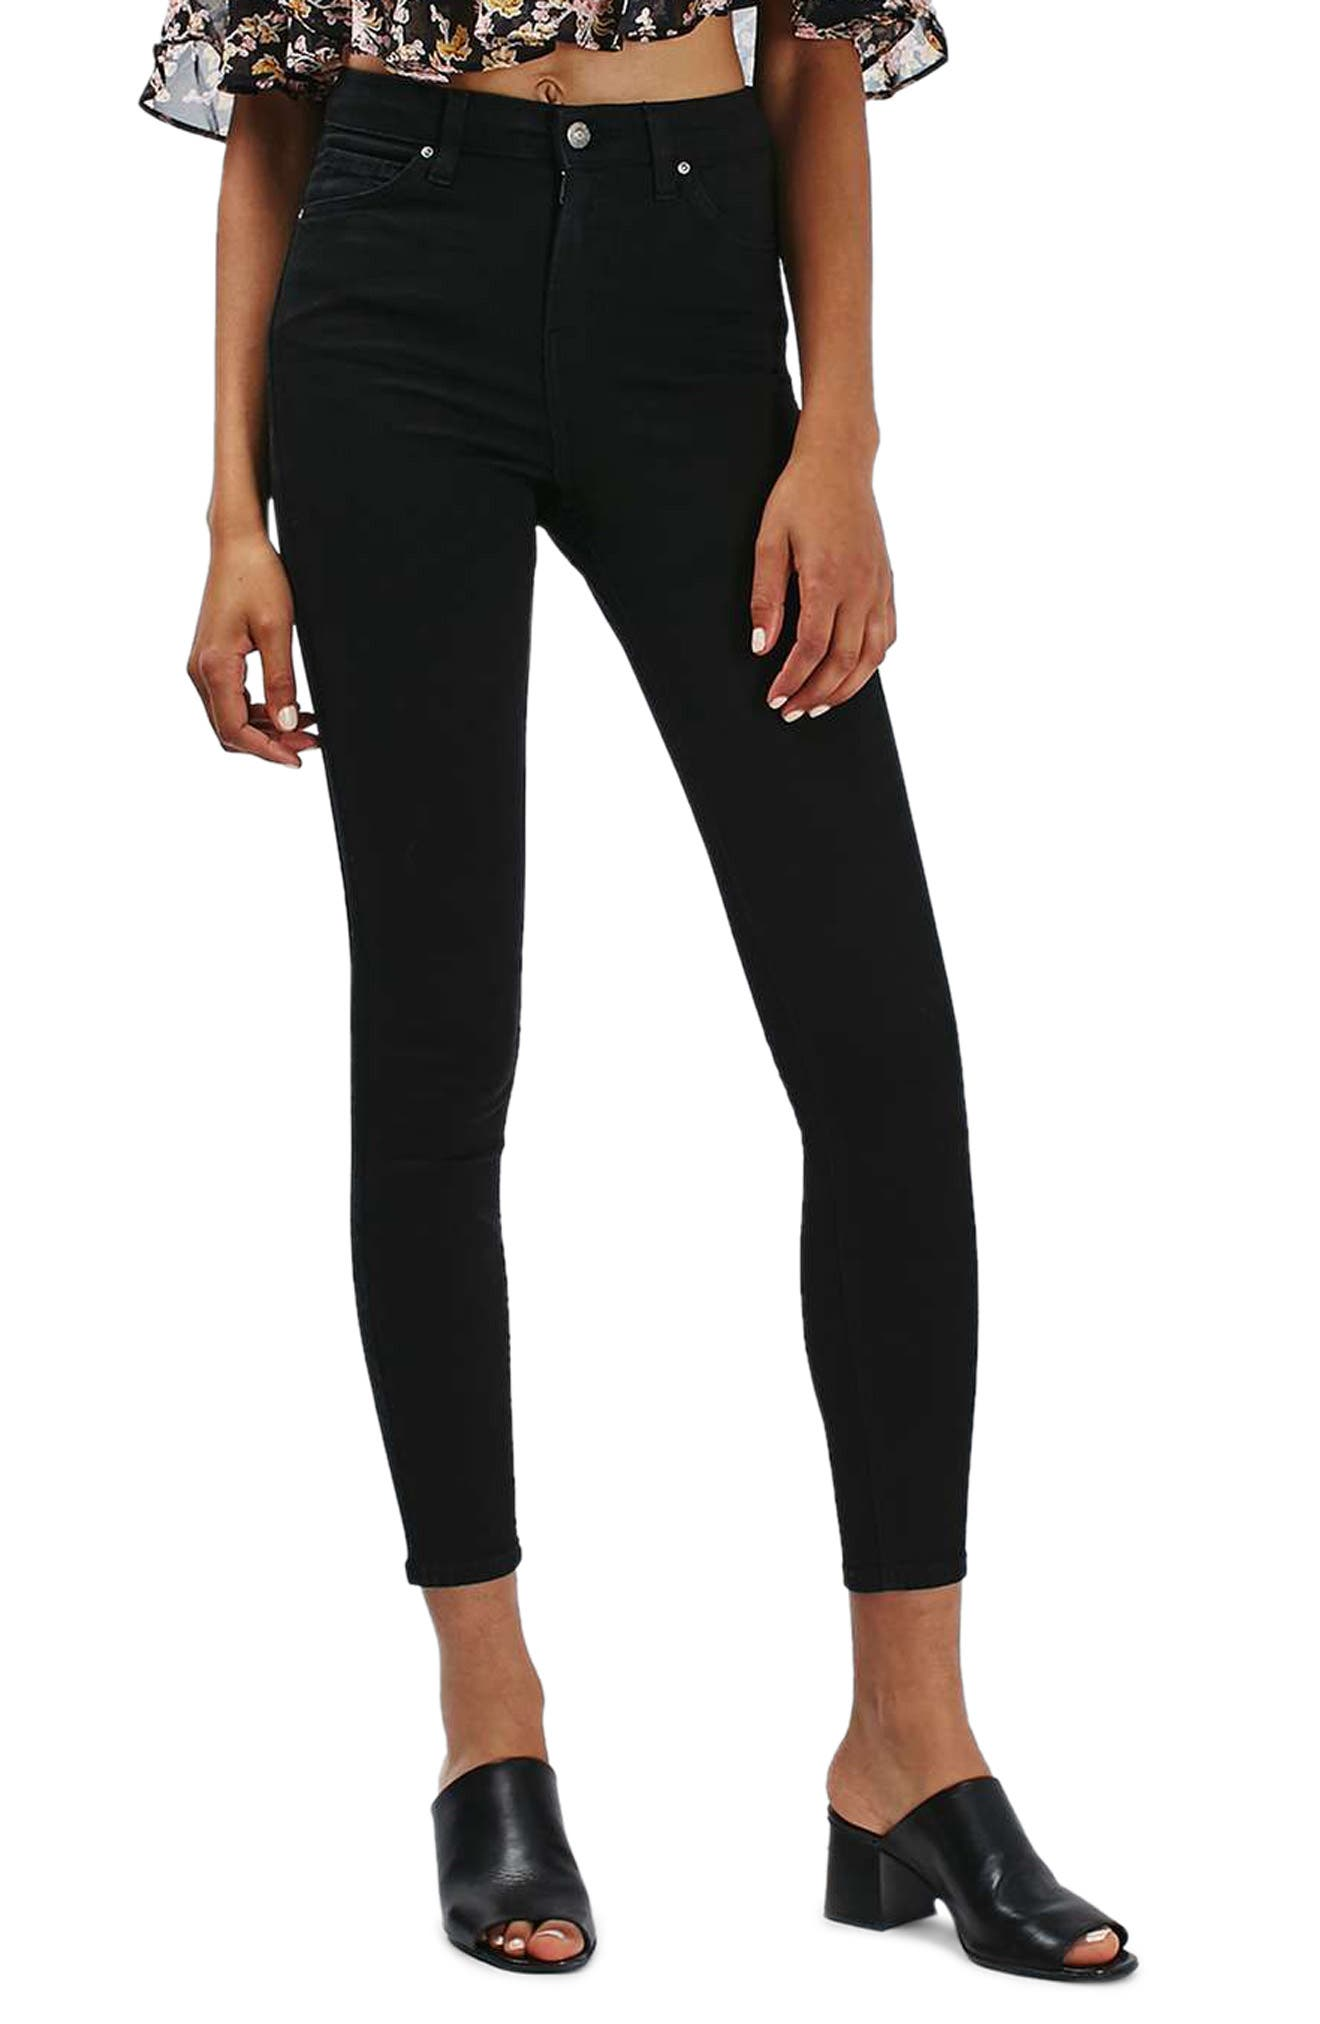 Alternate Image 1 Selected - Topshop Jamie High Waist Ankle Grazer Skinny Jeans